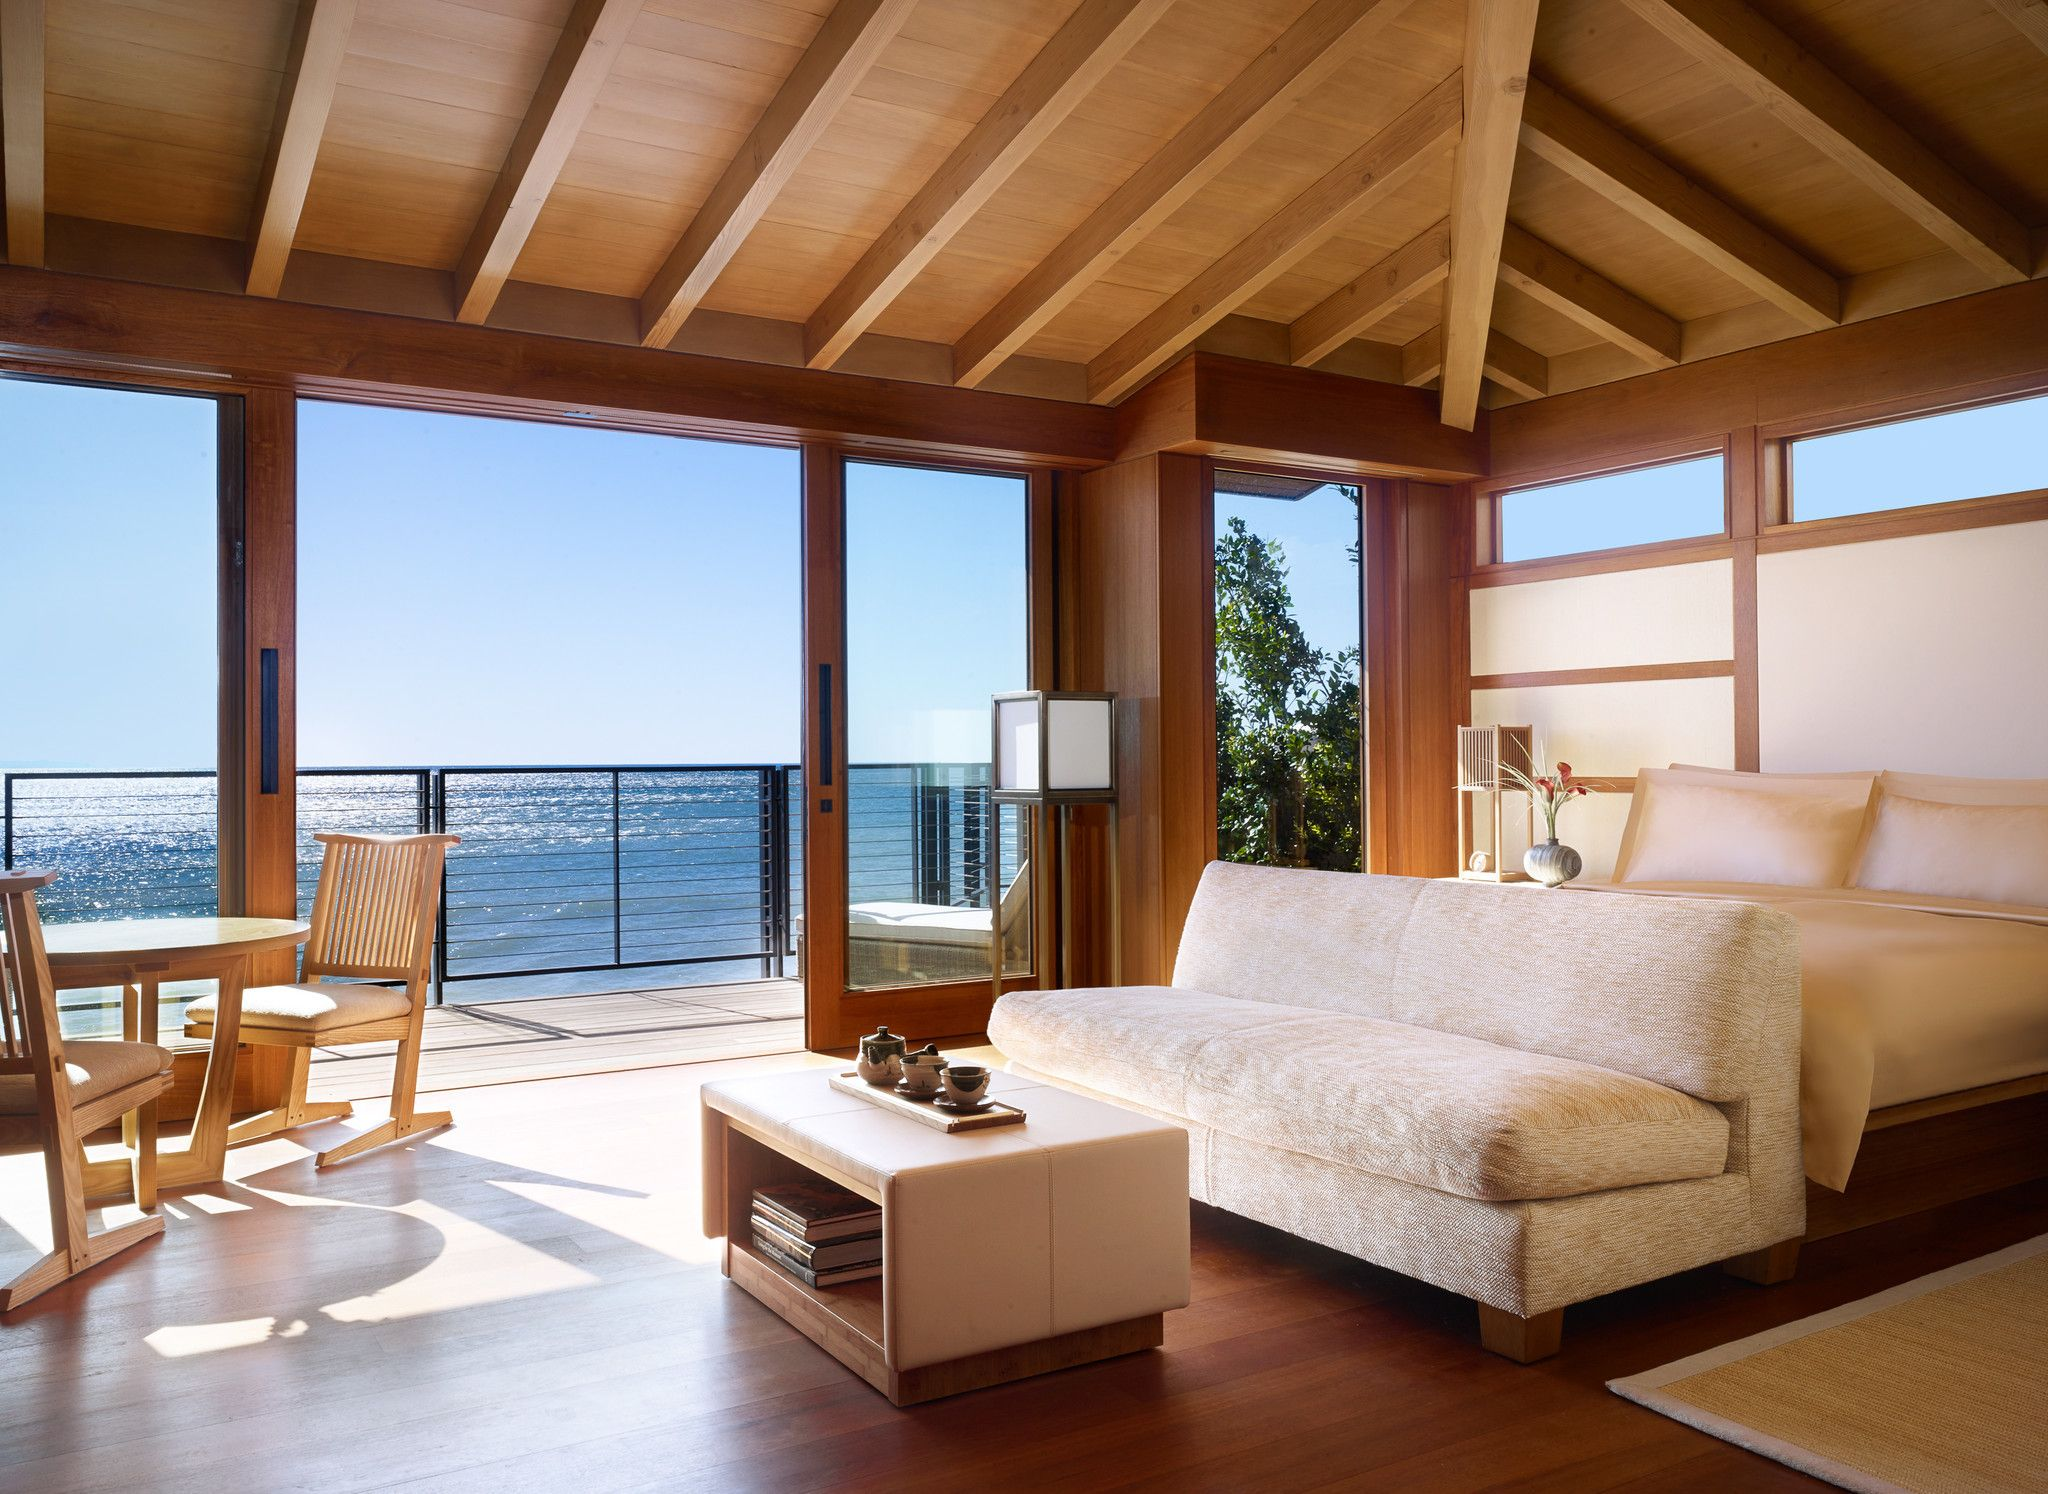 Rooms at Nobu\'s Japanese-style Malibu inn are minimalist in style ...